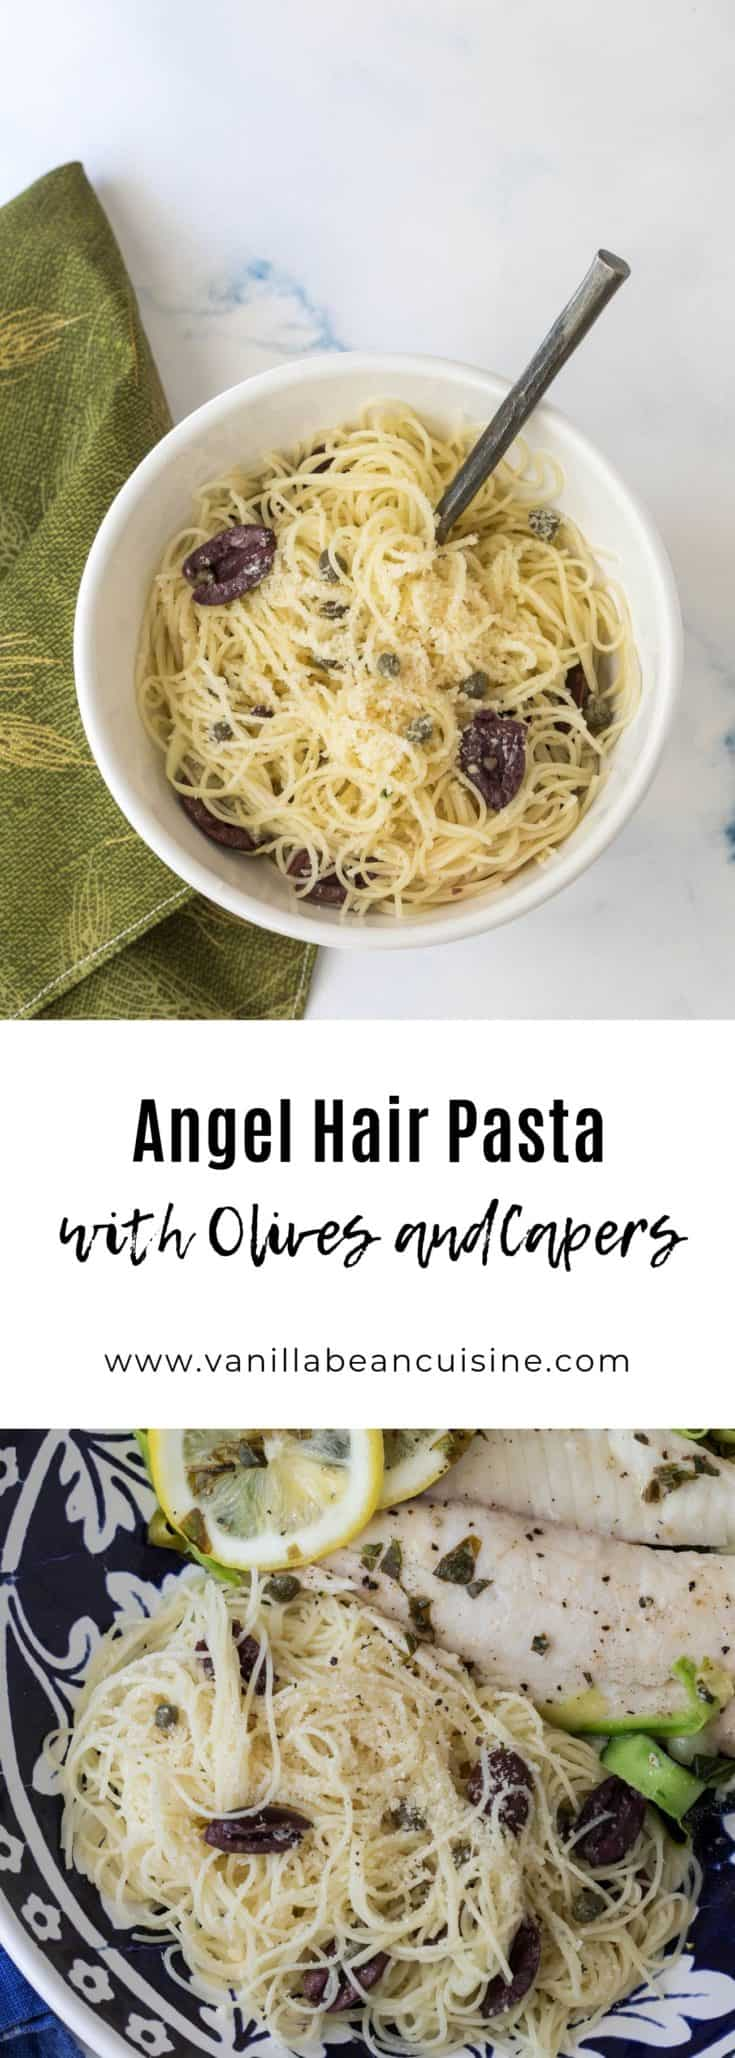 This angel hair pasta side dish, featuring olives, capers, and parmesan cheese, is the perfect accompaniment to grilled fish, meats, or vegetables.